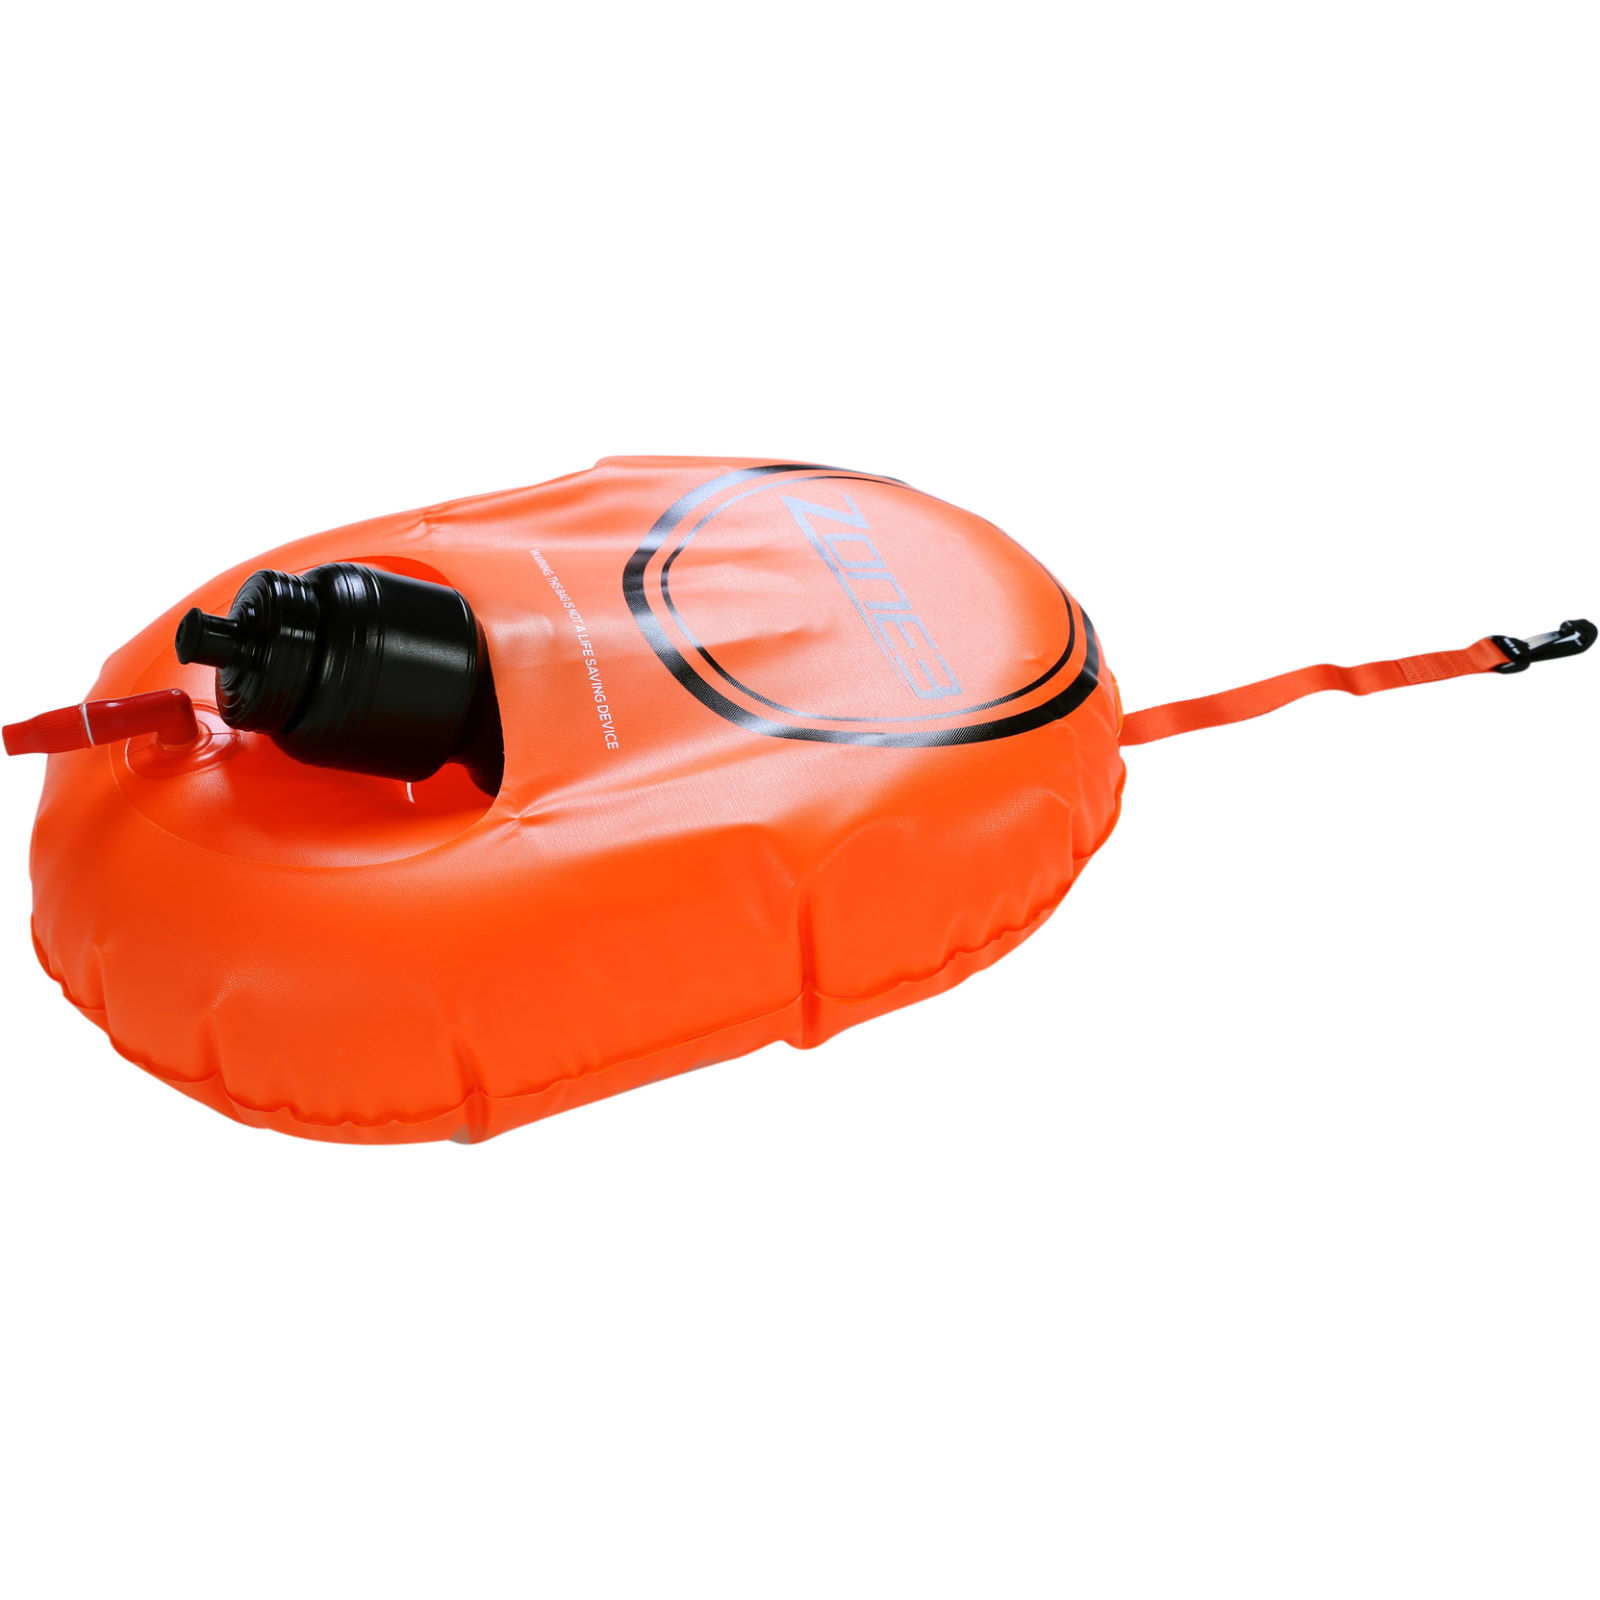 Wiggle Zone3 Swim Safety Buoy Hydration Control Floats